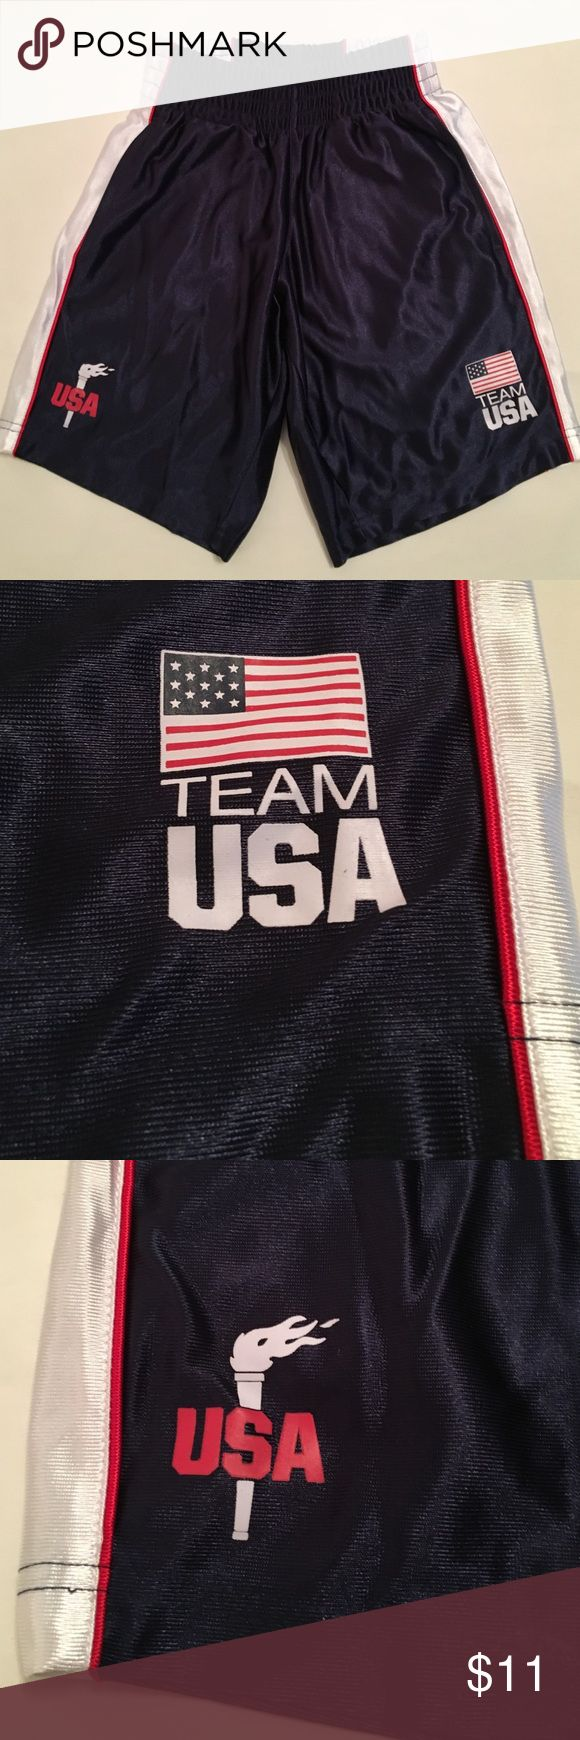 US Olympic Committee Team Apparel Shorts US Olympic Committee TEAM Apparel boys shorts size S (6/7), 100% polyester, lightly worn, good condition Team Apparel  Bottoms Shorts